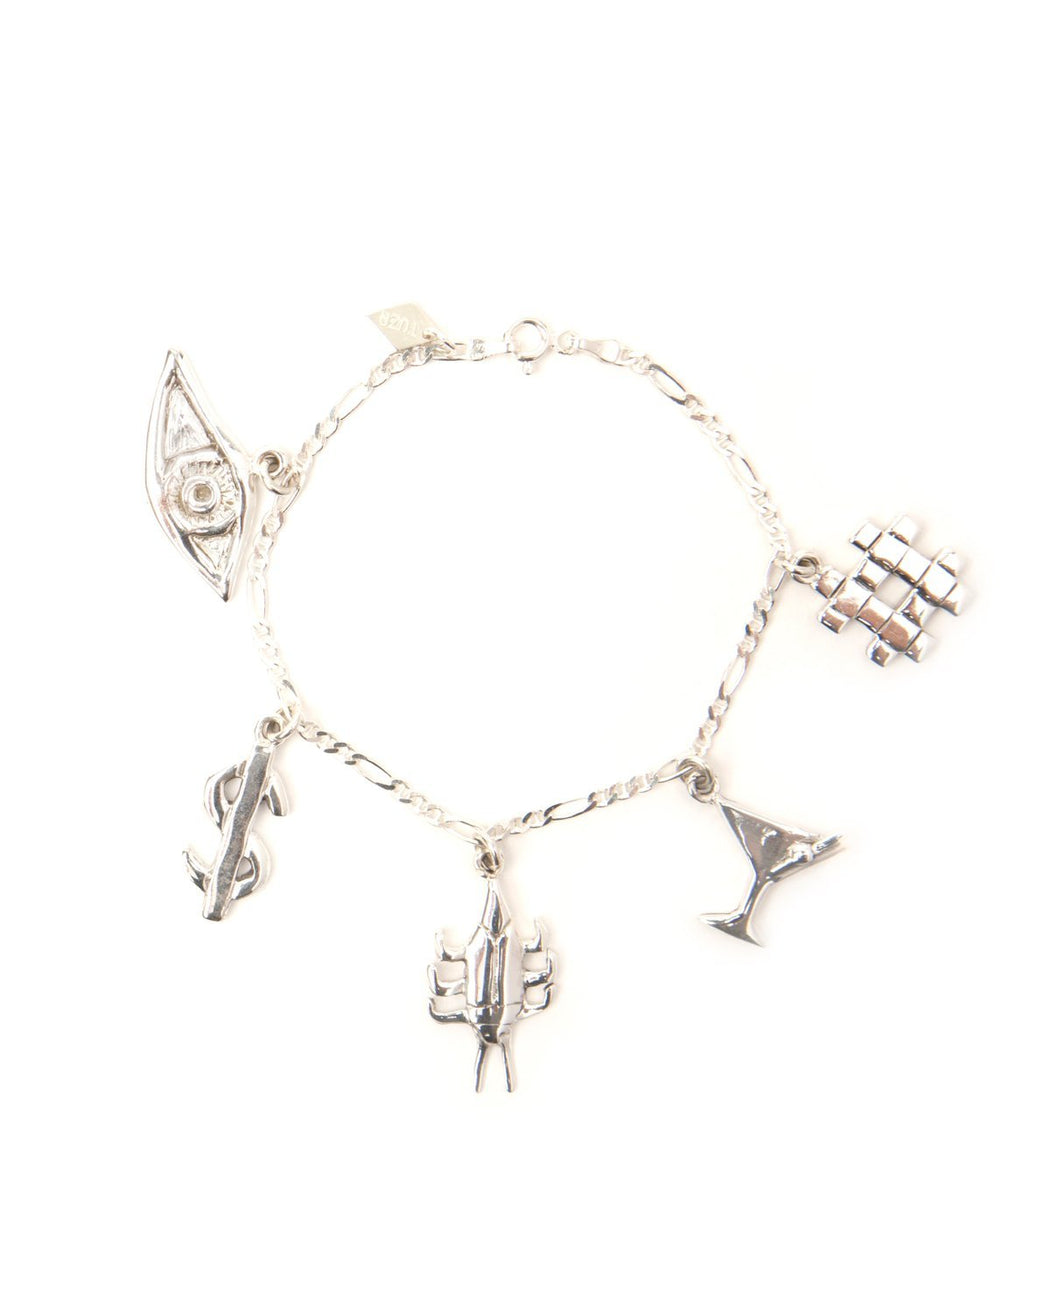 The-New-York-Nightlife-Charms-Bracelet